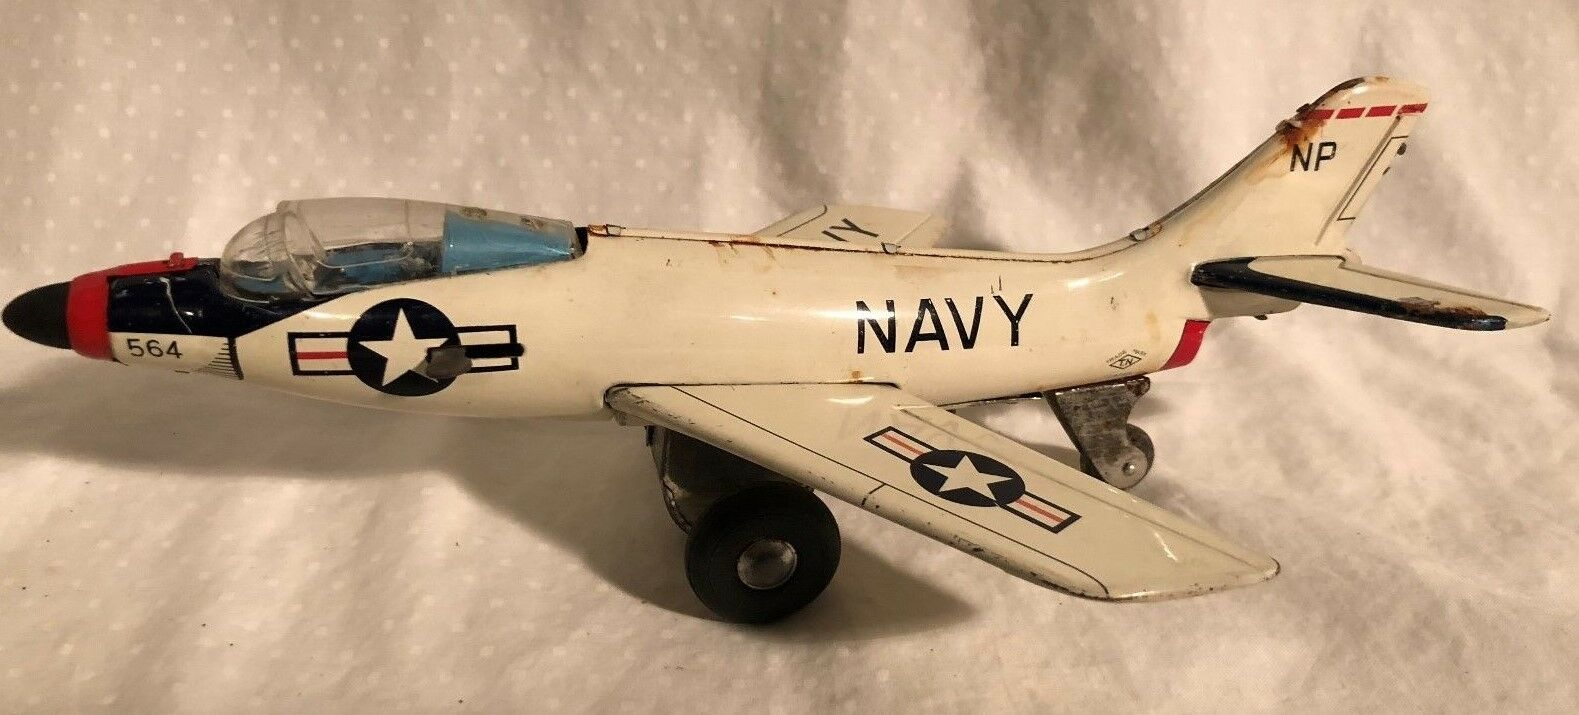 Nomura T.N. Friction Navy Jet Fighter Tin Toy Ejection Seat Opening Canopy